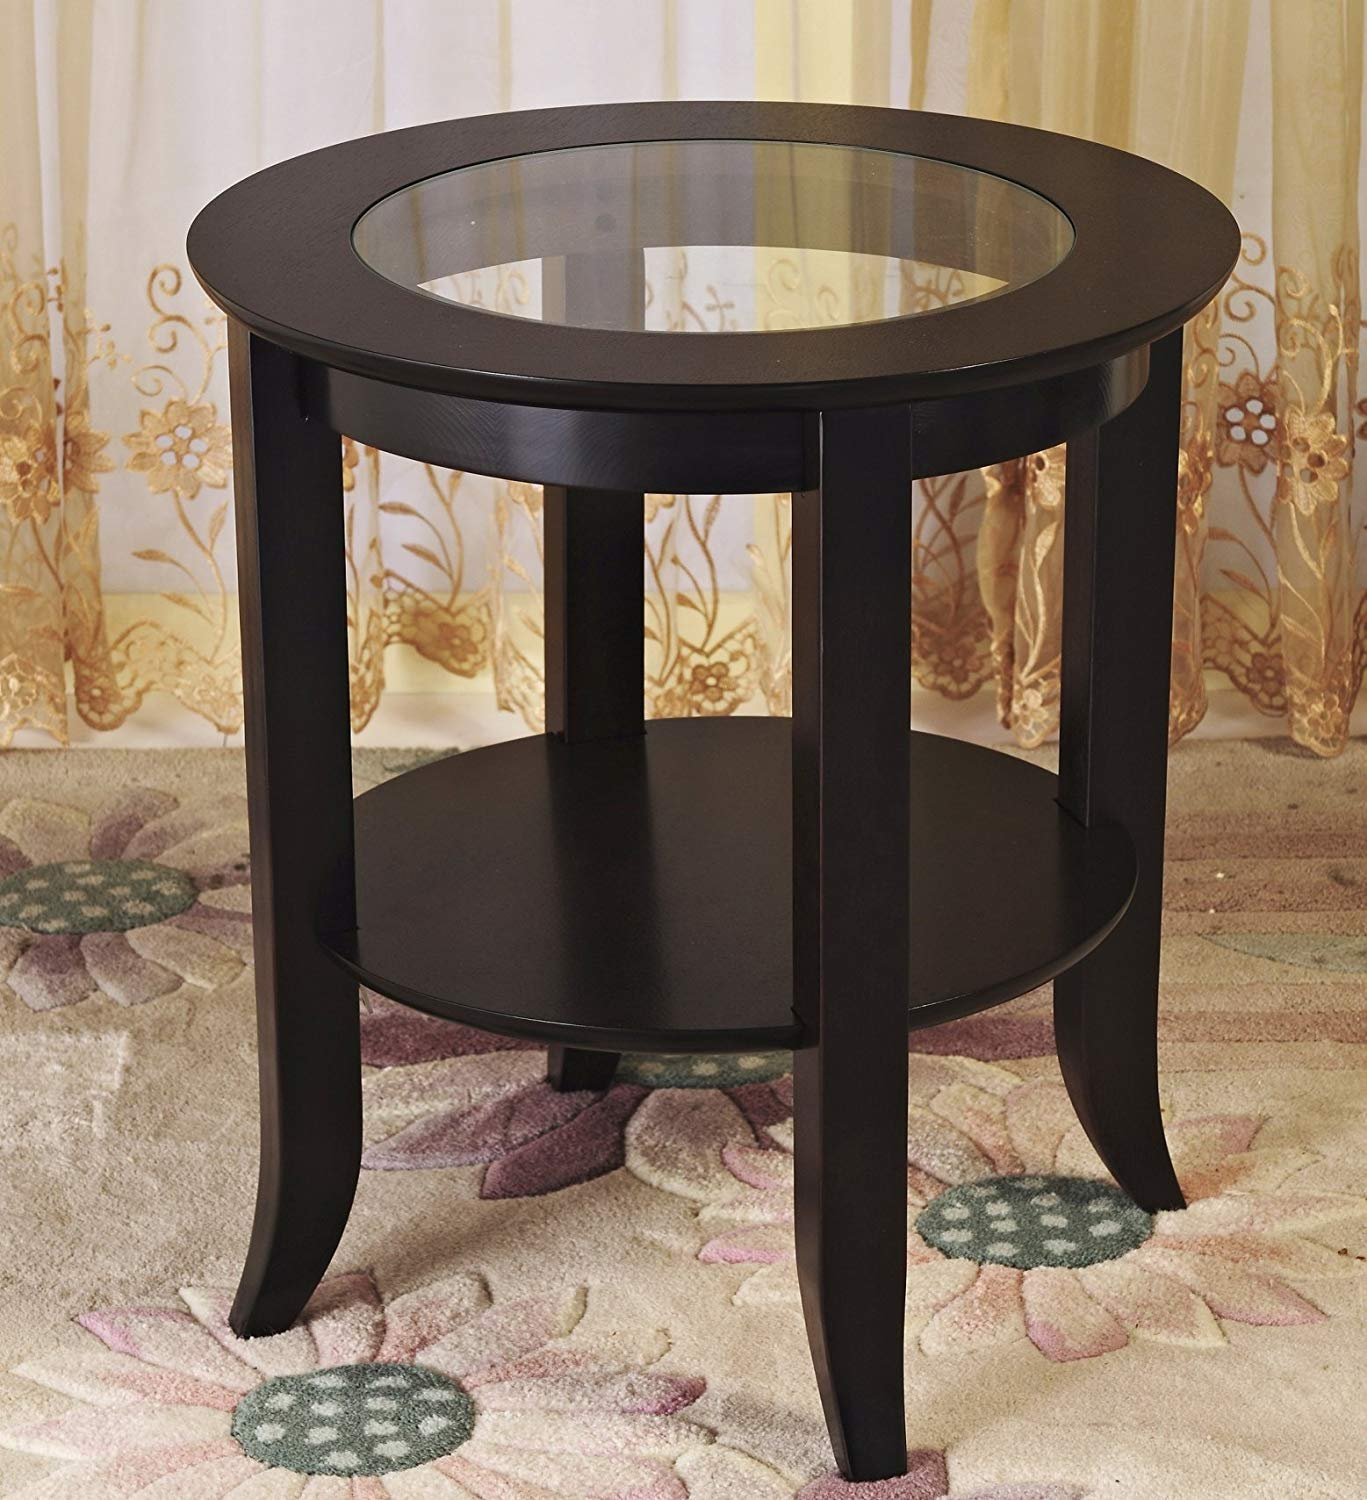 frenchi furniture wood genoa end table round side winsome cassie accent with glass top cappuccino finish inset espresso kitchen dining cordless battery lamps media room chairs dog